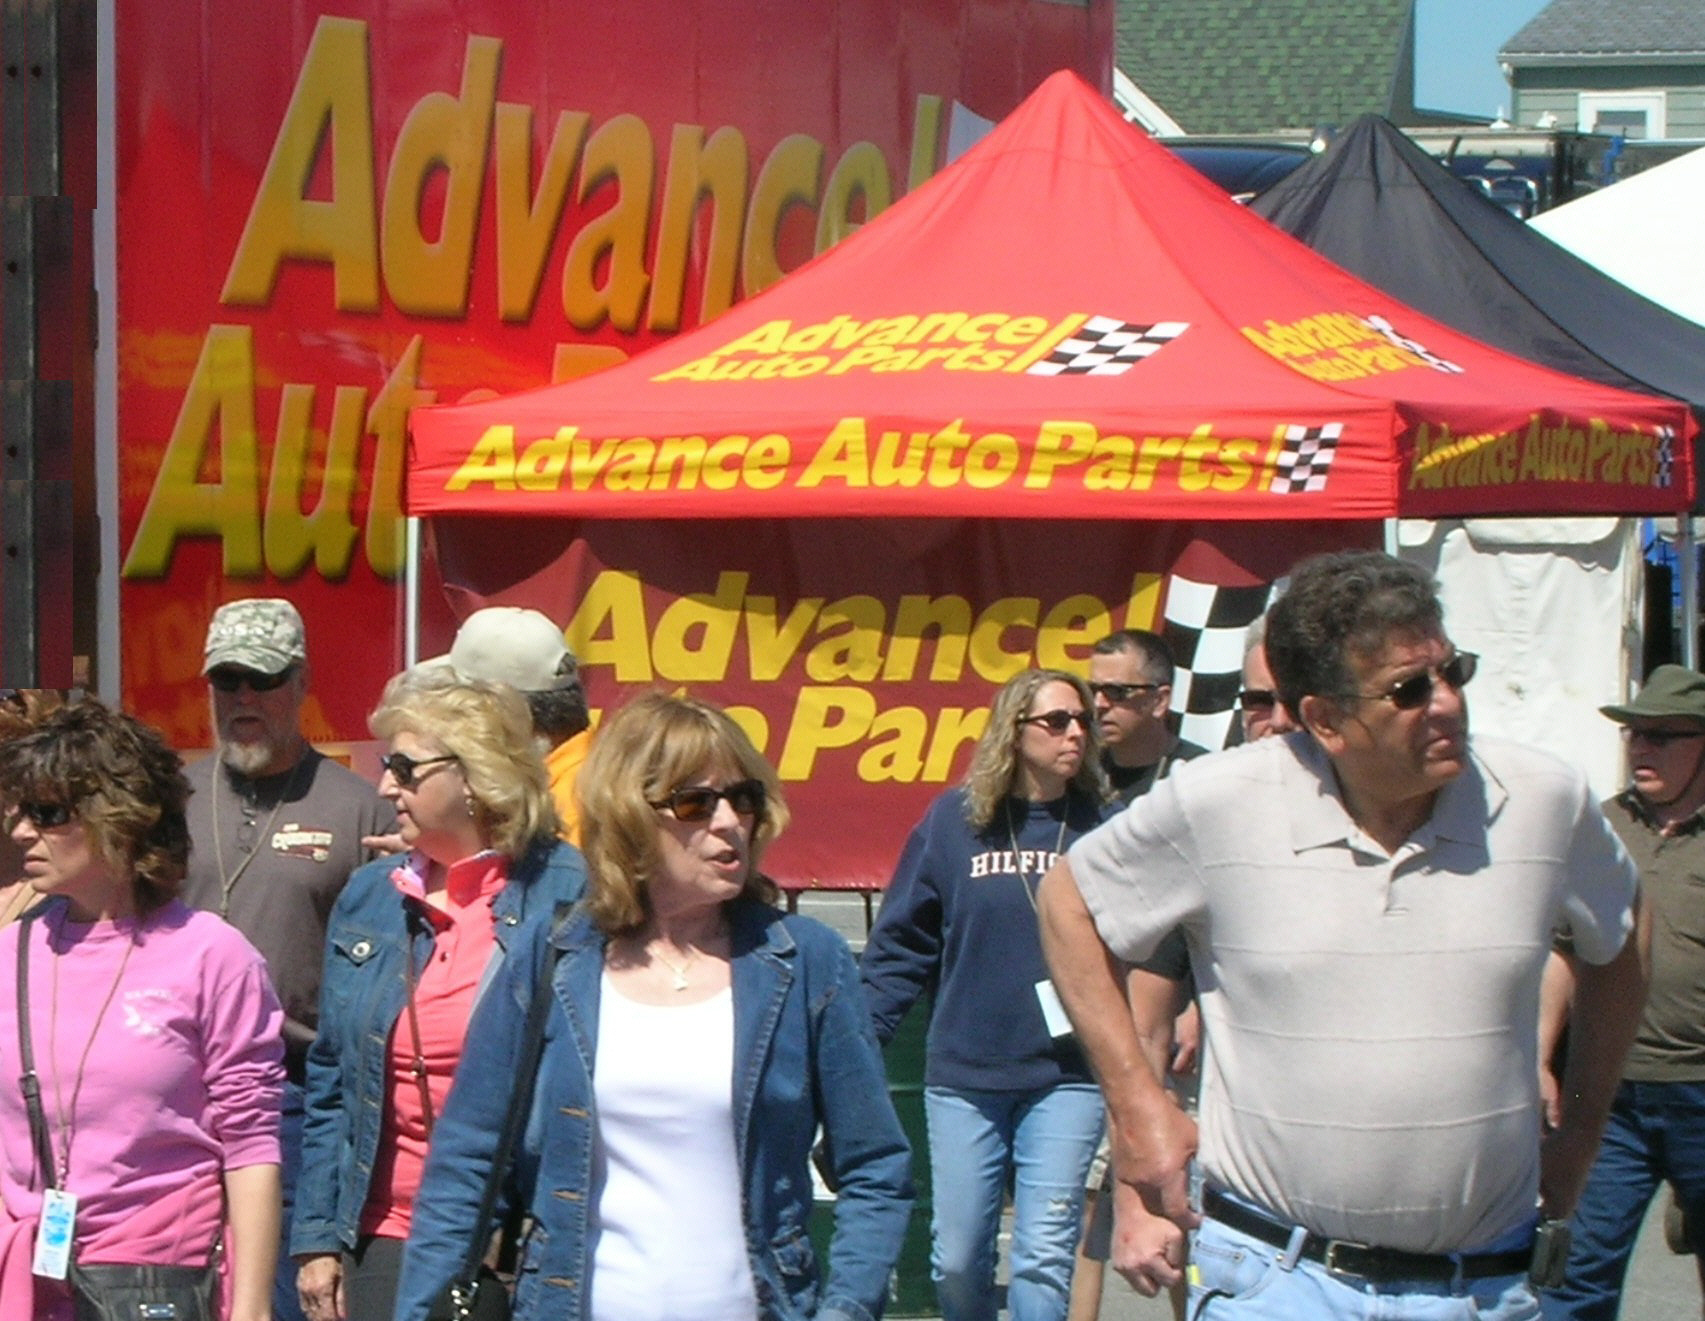 Cruisin' Ocean City - Advance Auto Parts